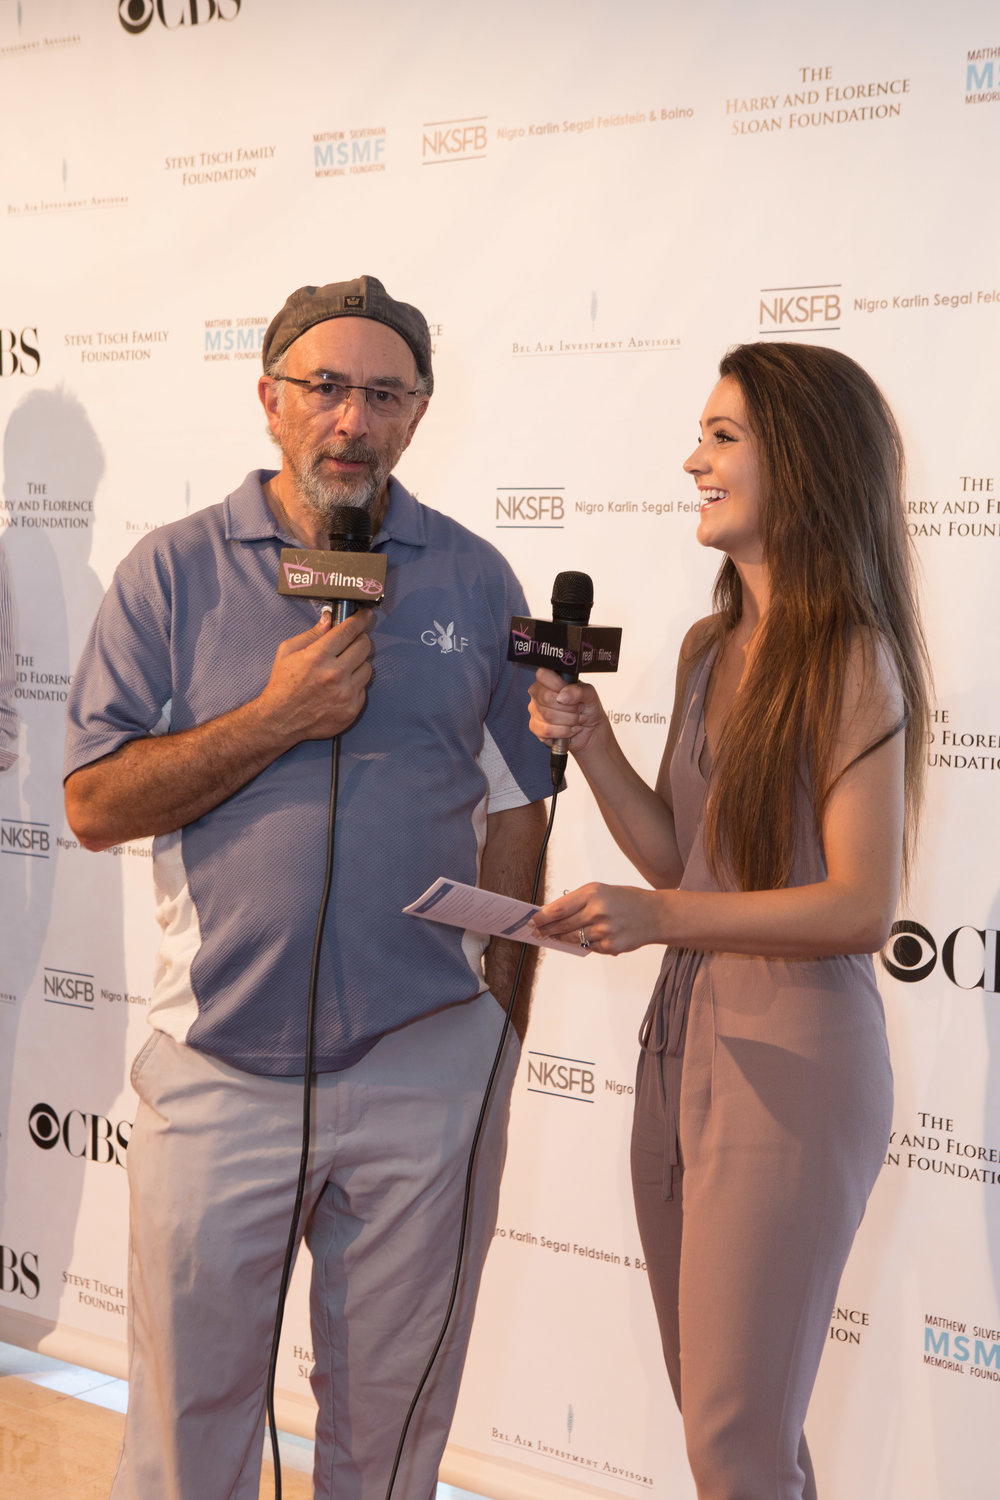 IMG_8247-CELEBRITY-Richard Schiff.jpg